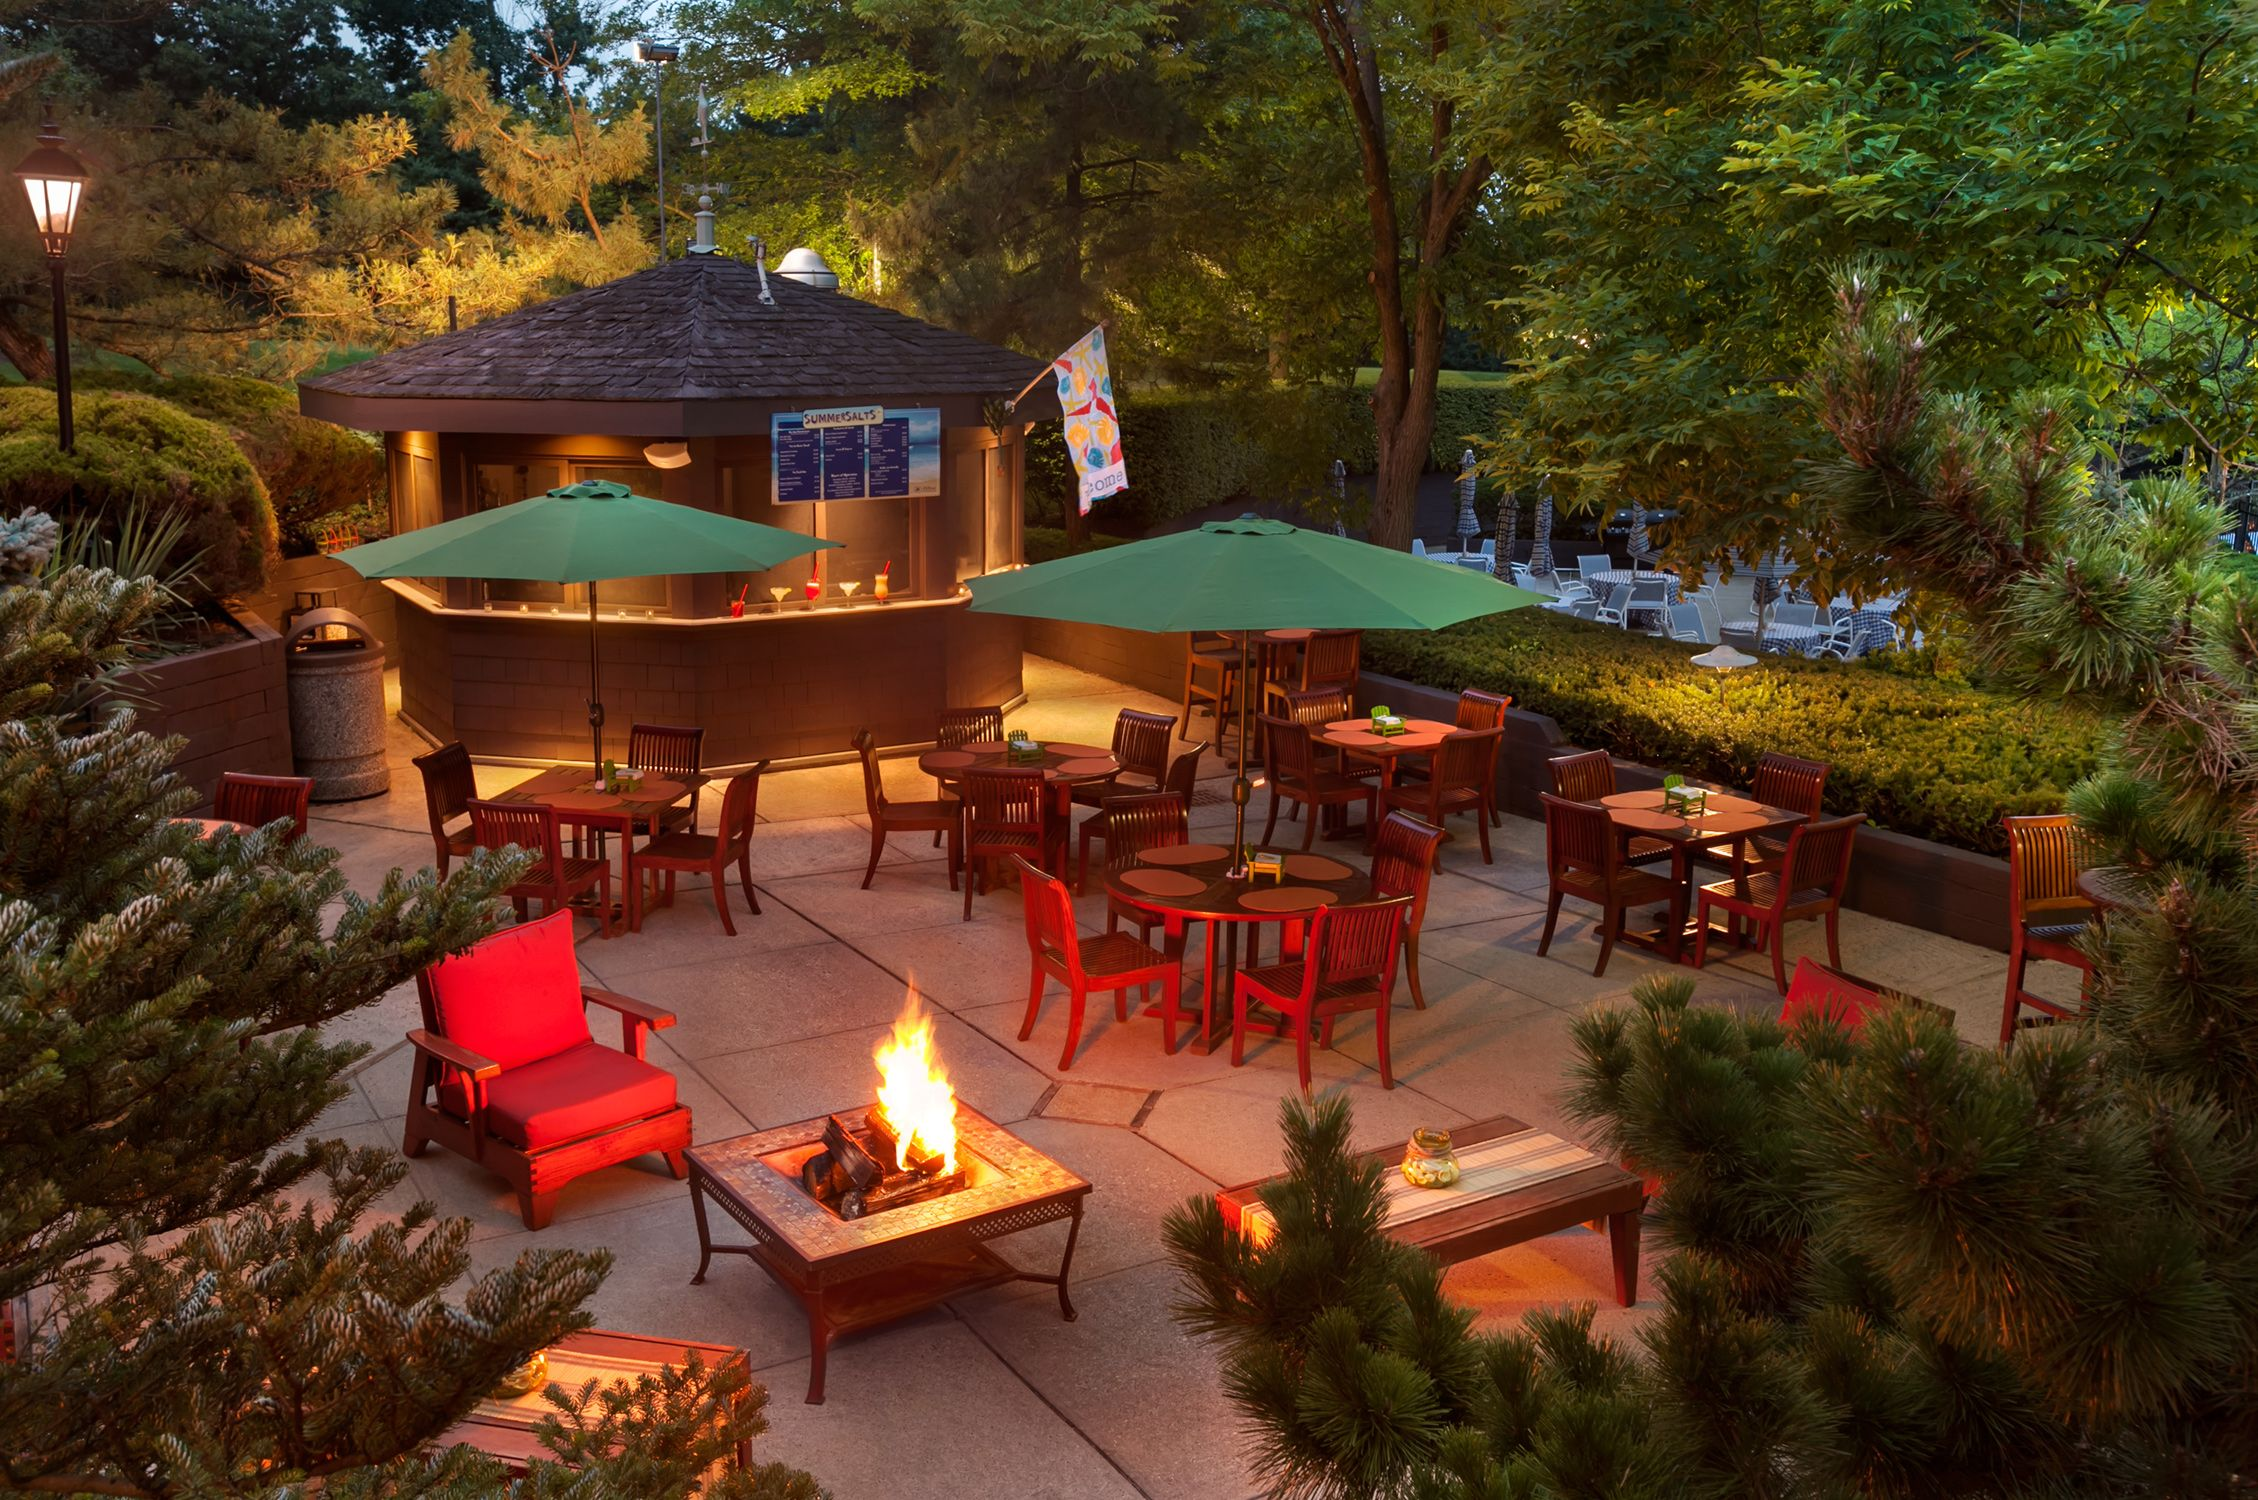 Our hotel's lower terrace offers seasonal outdoor seating and dining. Enjoy smores over the open fire pits or enjoy casual conversation with friends over cocktails.